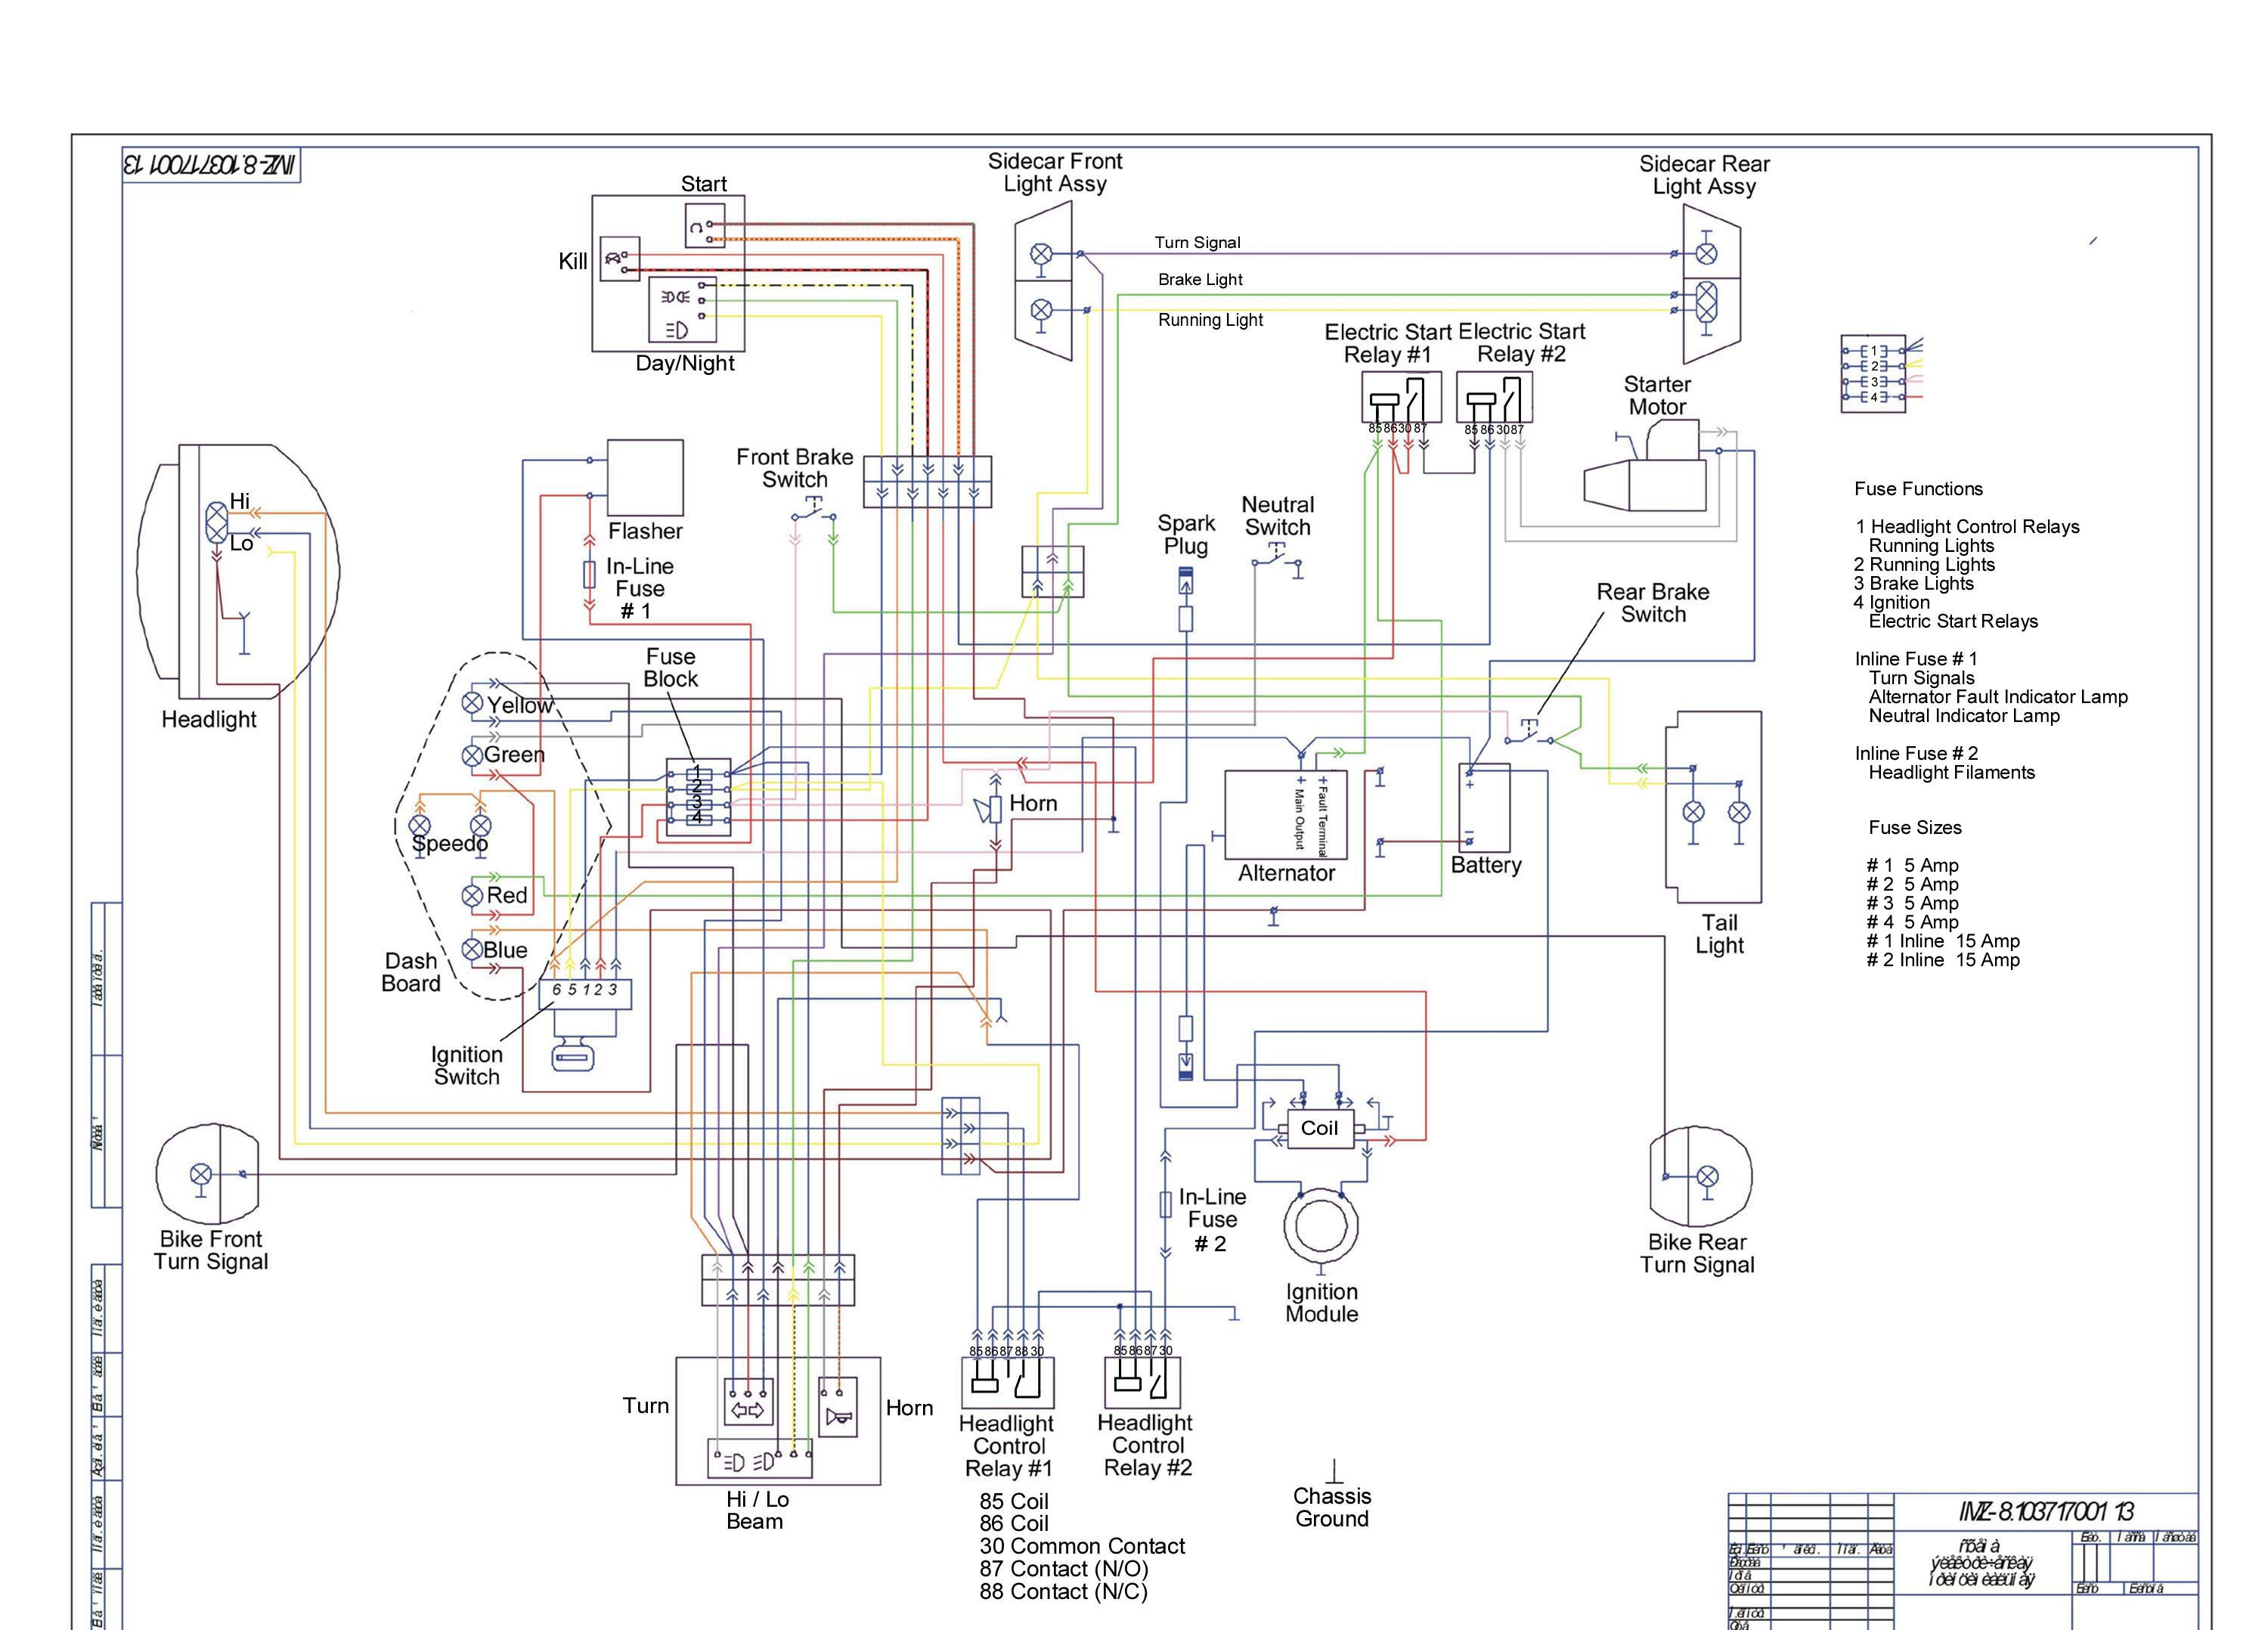 Ural Wiring Diagrams Diagram Data Yamaha 750 2002 750cc Schematic Parts